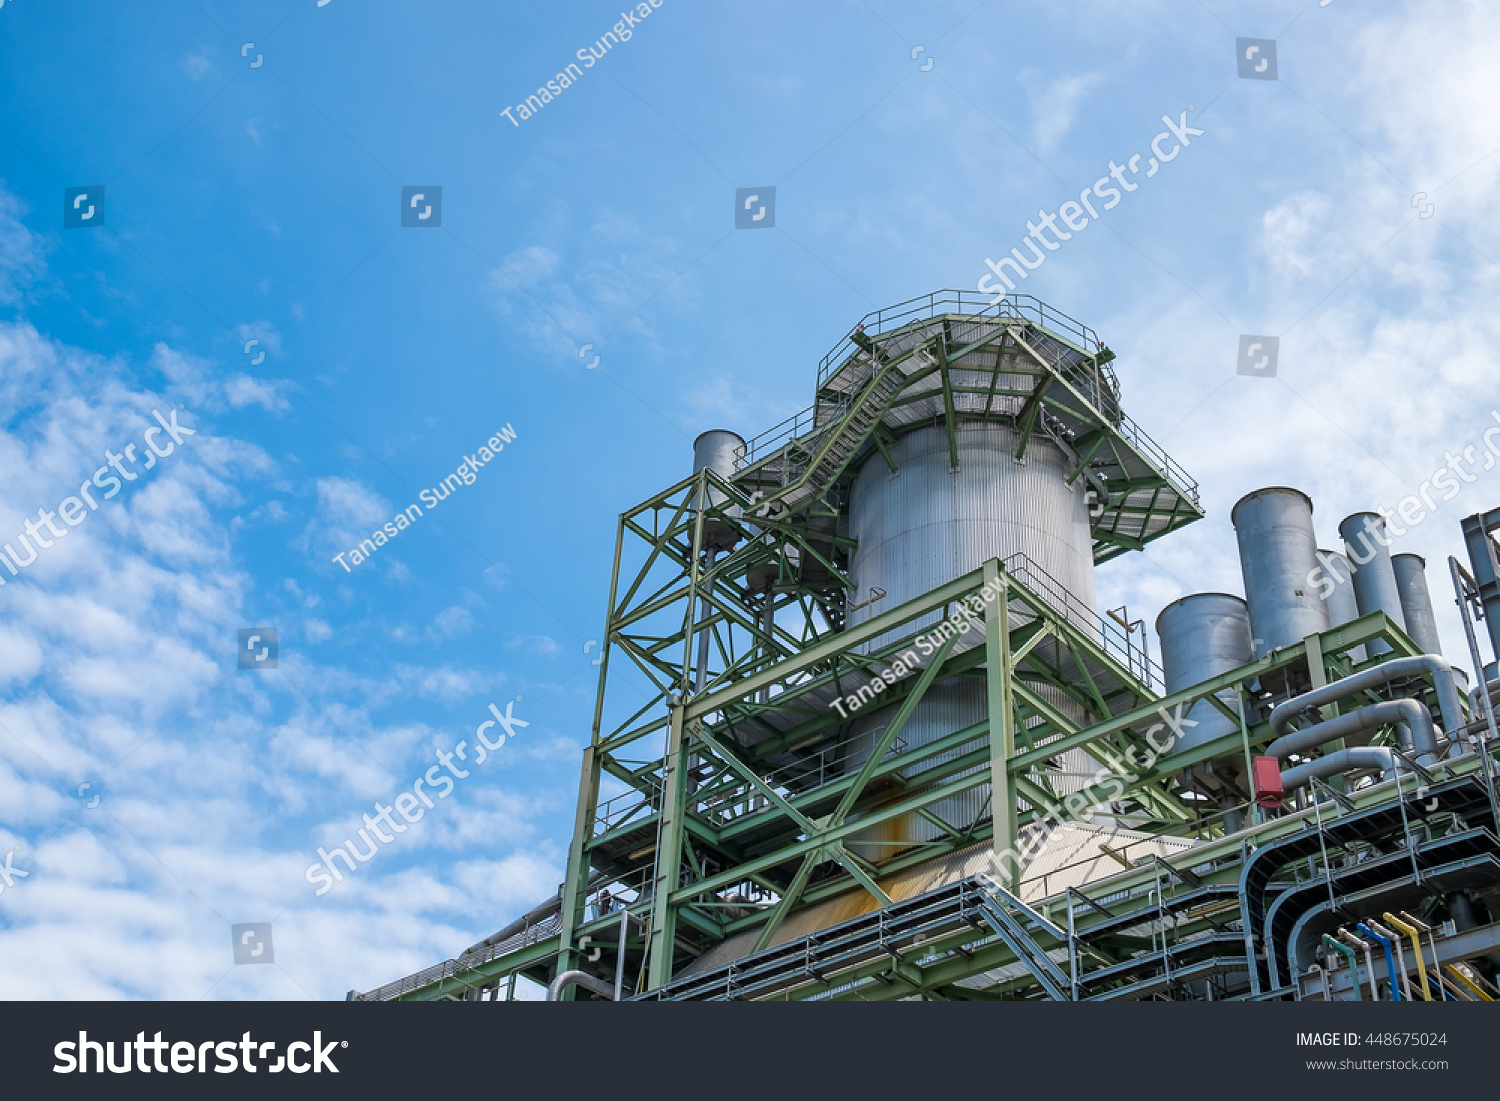 Boiler Equipment Combined Cycle Power Plant Stock Photo (Royalty ...